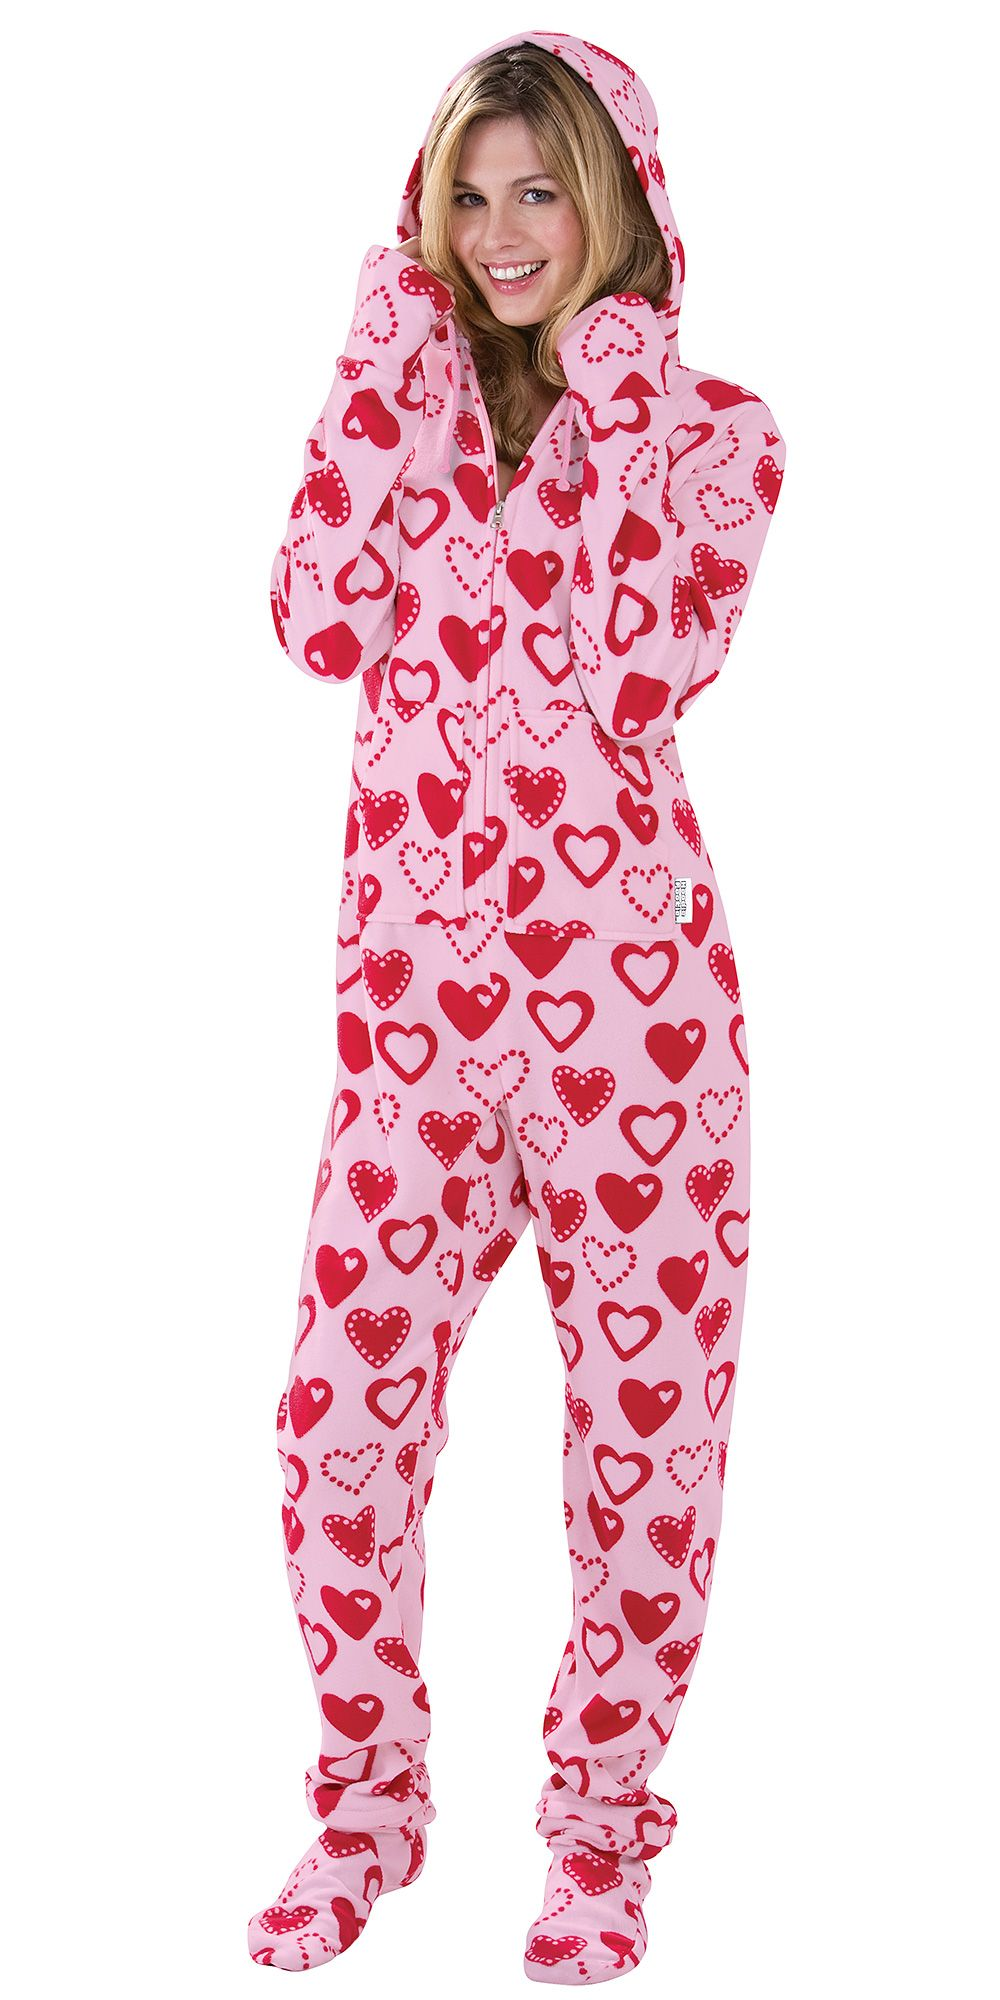 265e4a87bb9 Sweetheart Snuggle Fleece Hoodie-Footie for Women - Valentine s Day Pajamas  from PajamaGram.  79.99  HoodieFootie  ValentinesDay  Hearts  Pajamas